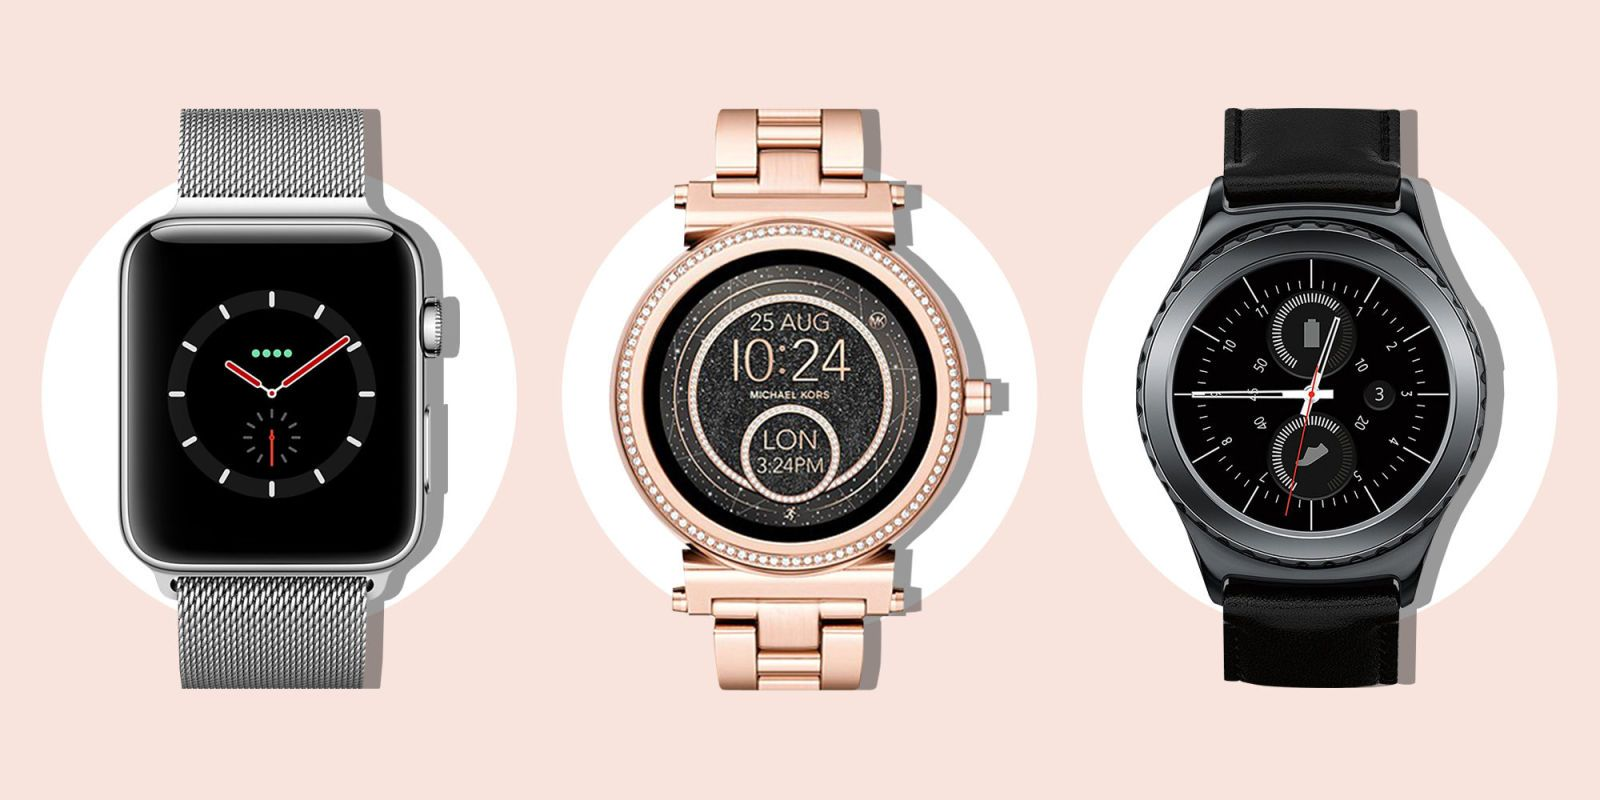 techradar the smartwatch best watches available india you in can wearable buy smartwatches top news